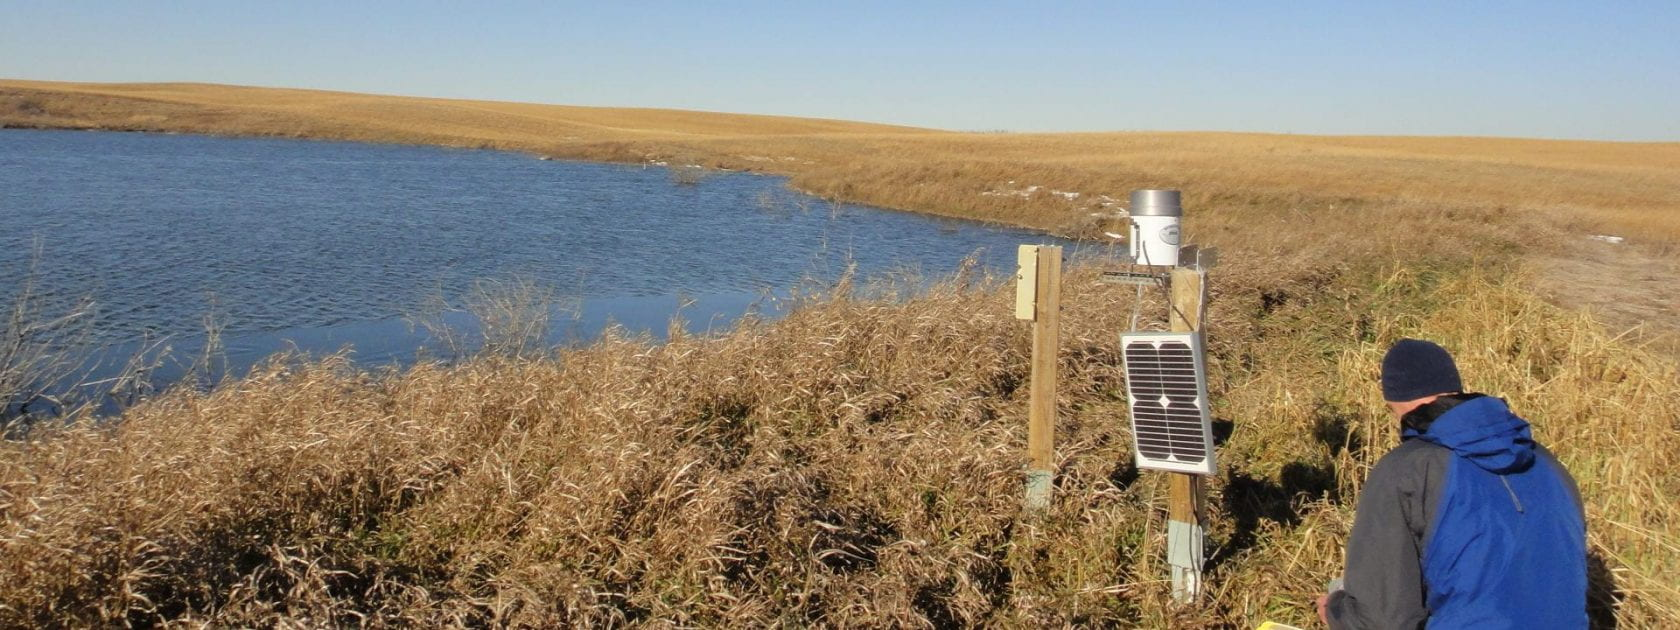 Aaron Berg in a field by a lake taking measurements with soil moisture equipment.